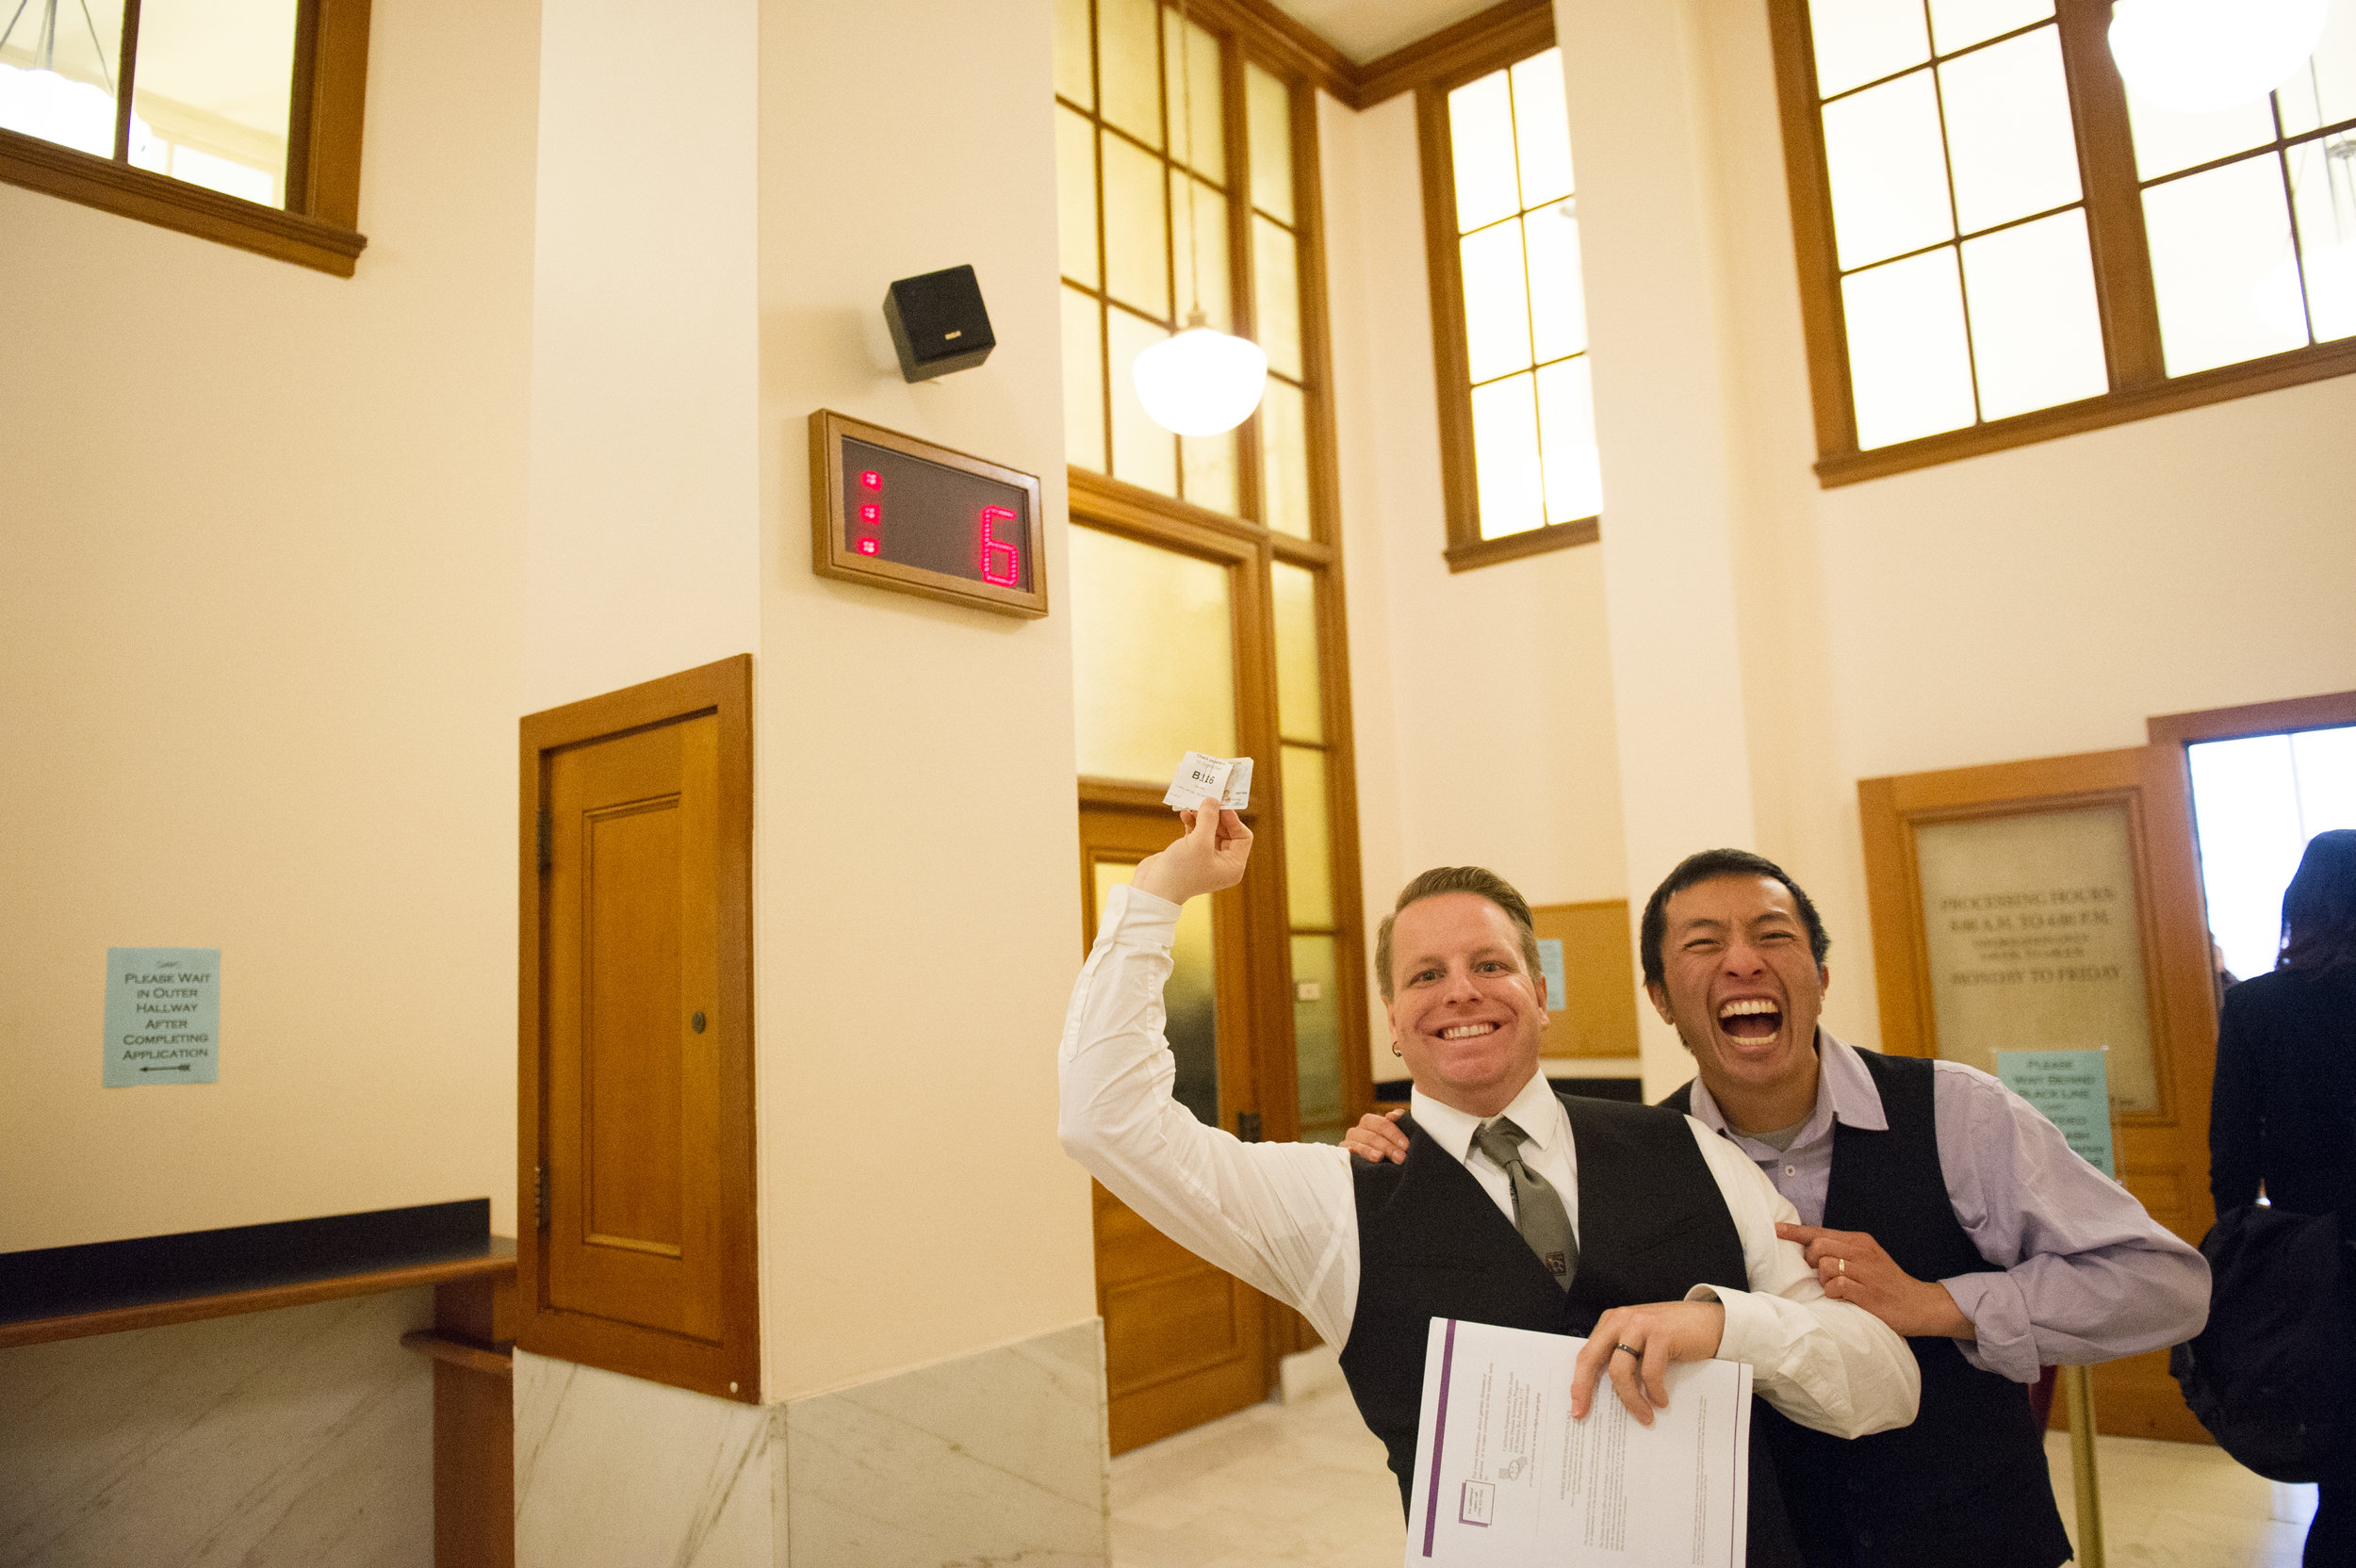 LGBTQ wedding elopement at the San Francisco City Hall benefitting the Trevor Project and photographed by Chloe Jackman Photography